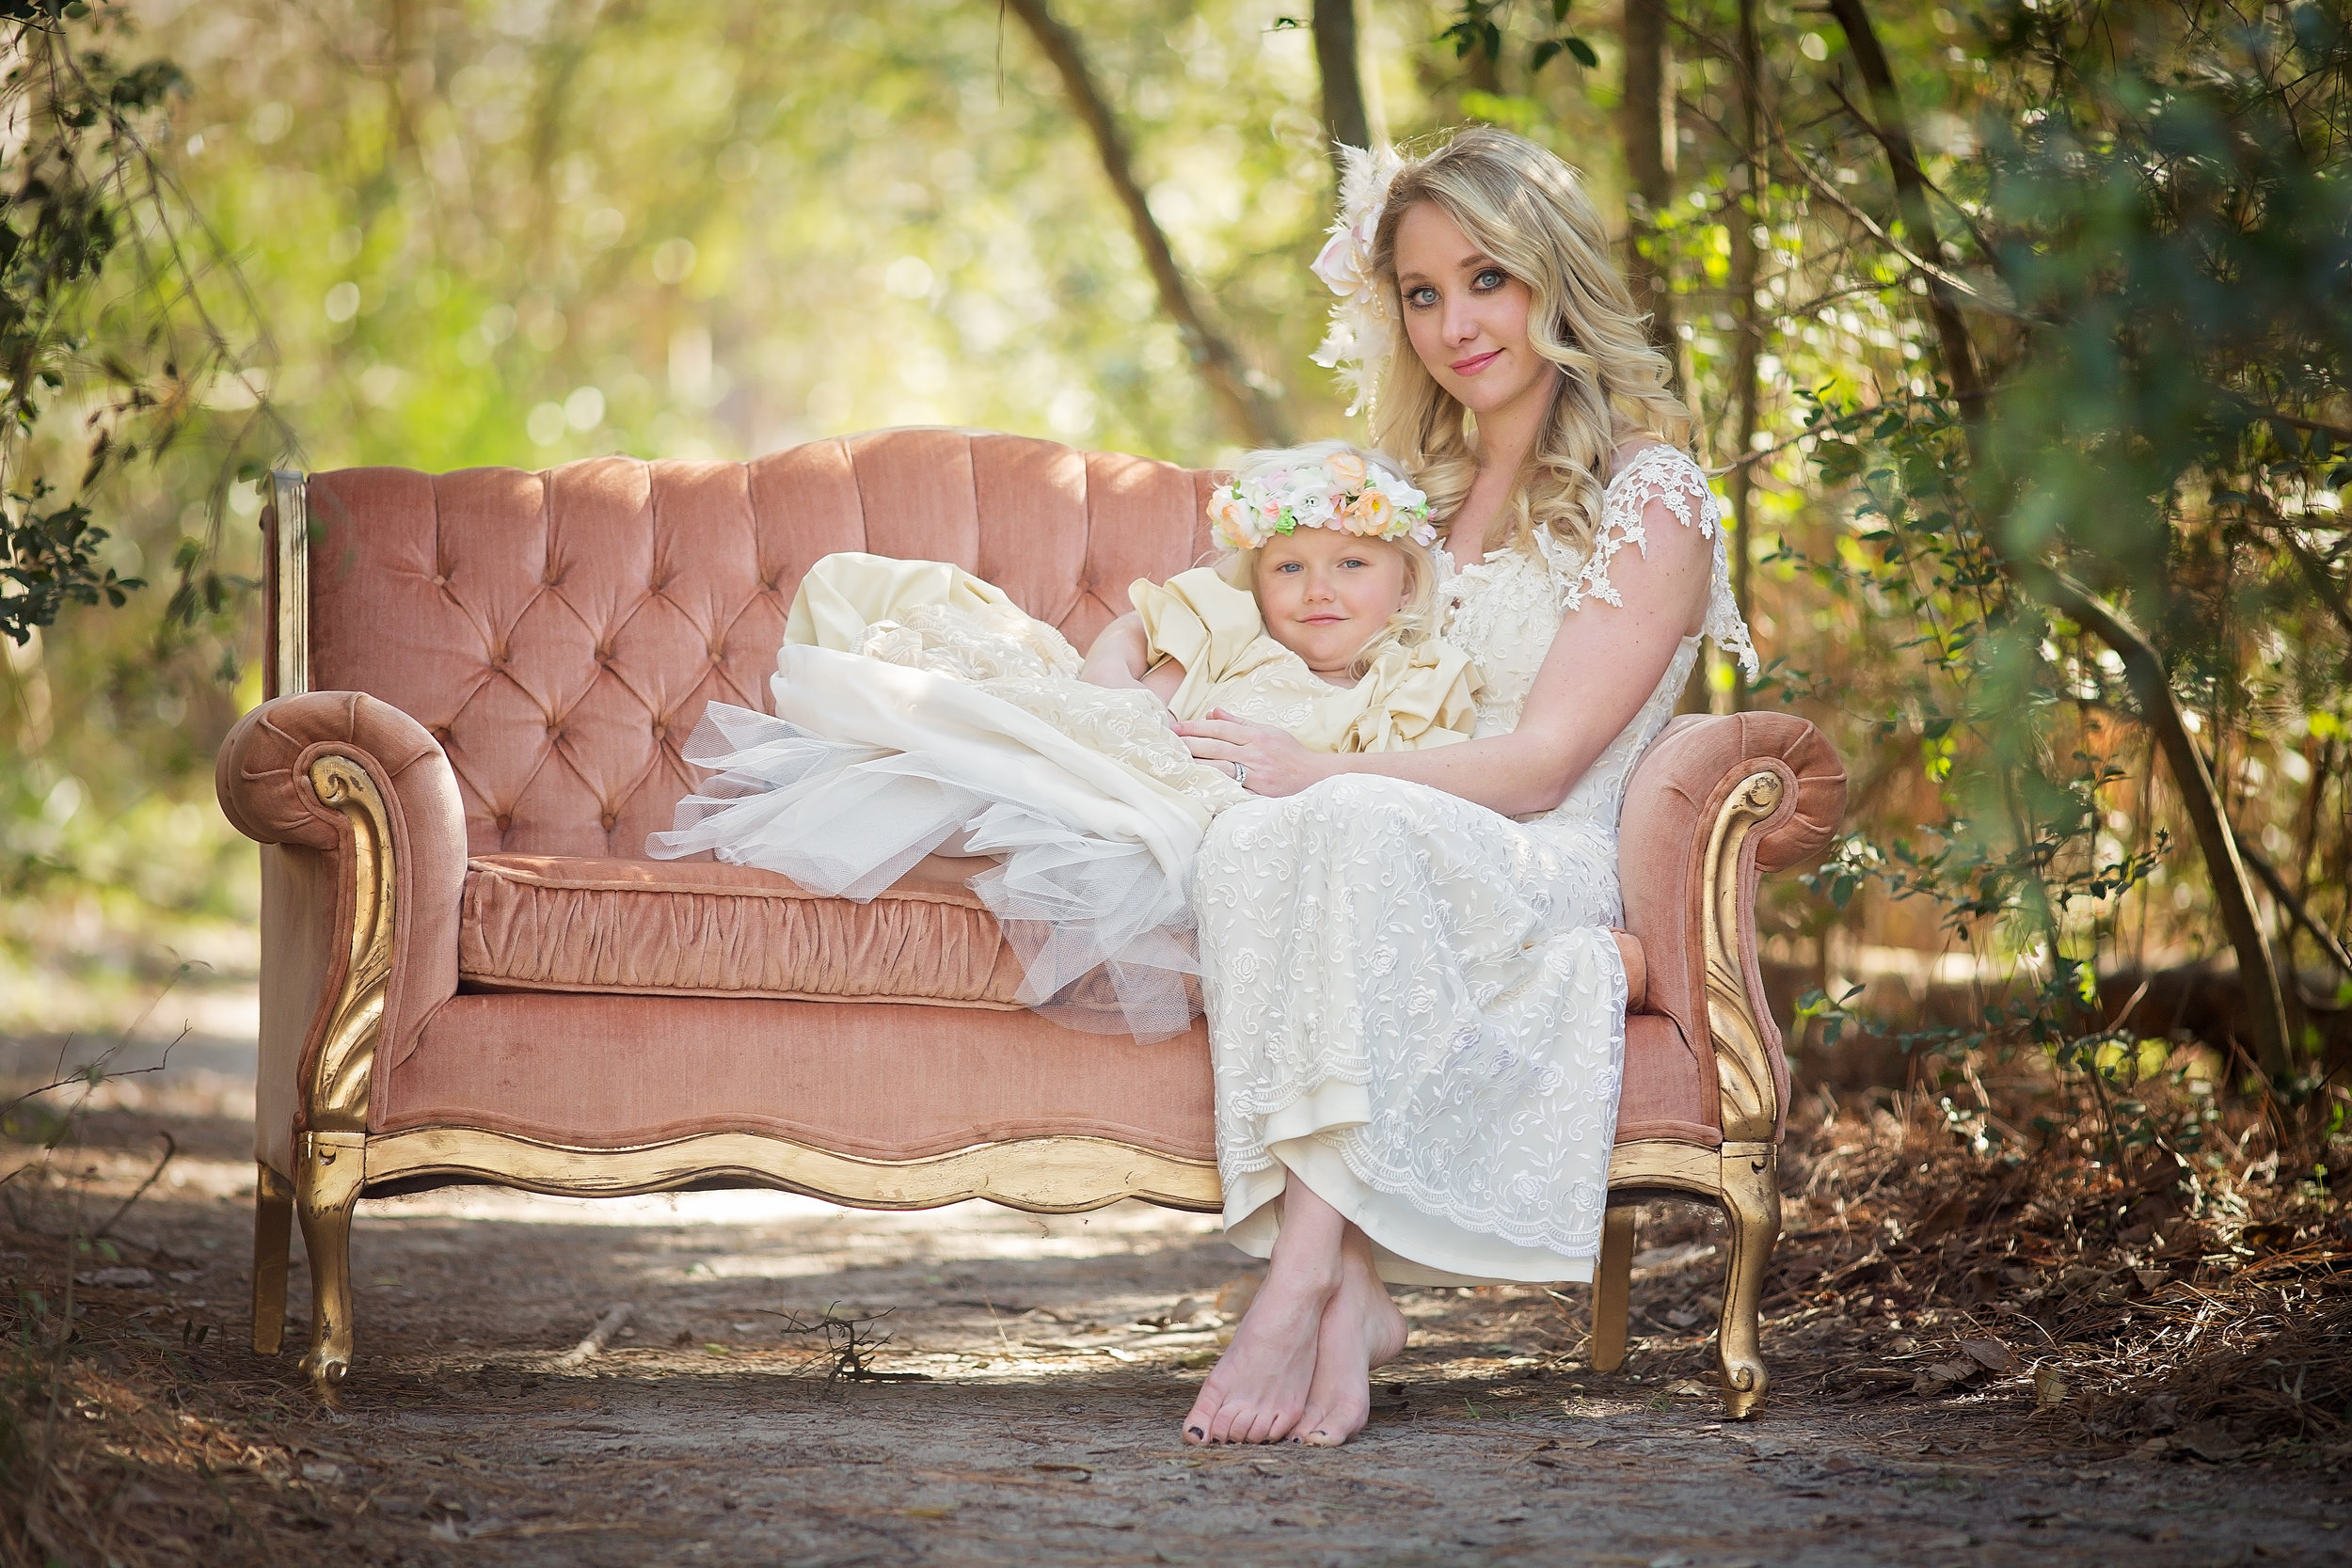 Mommy and Me photo session ideas